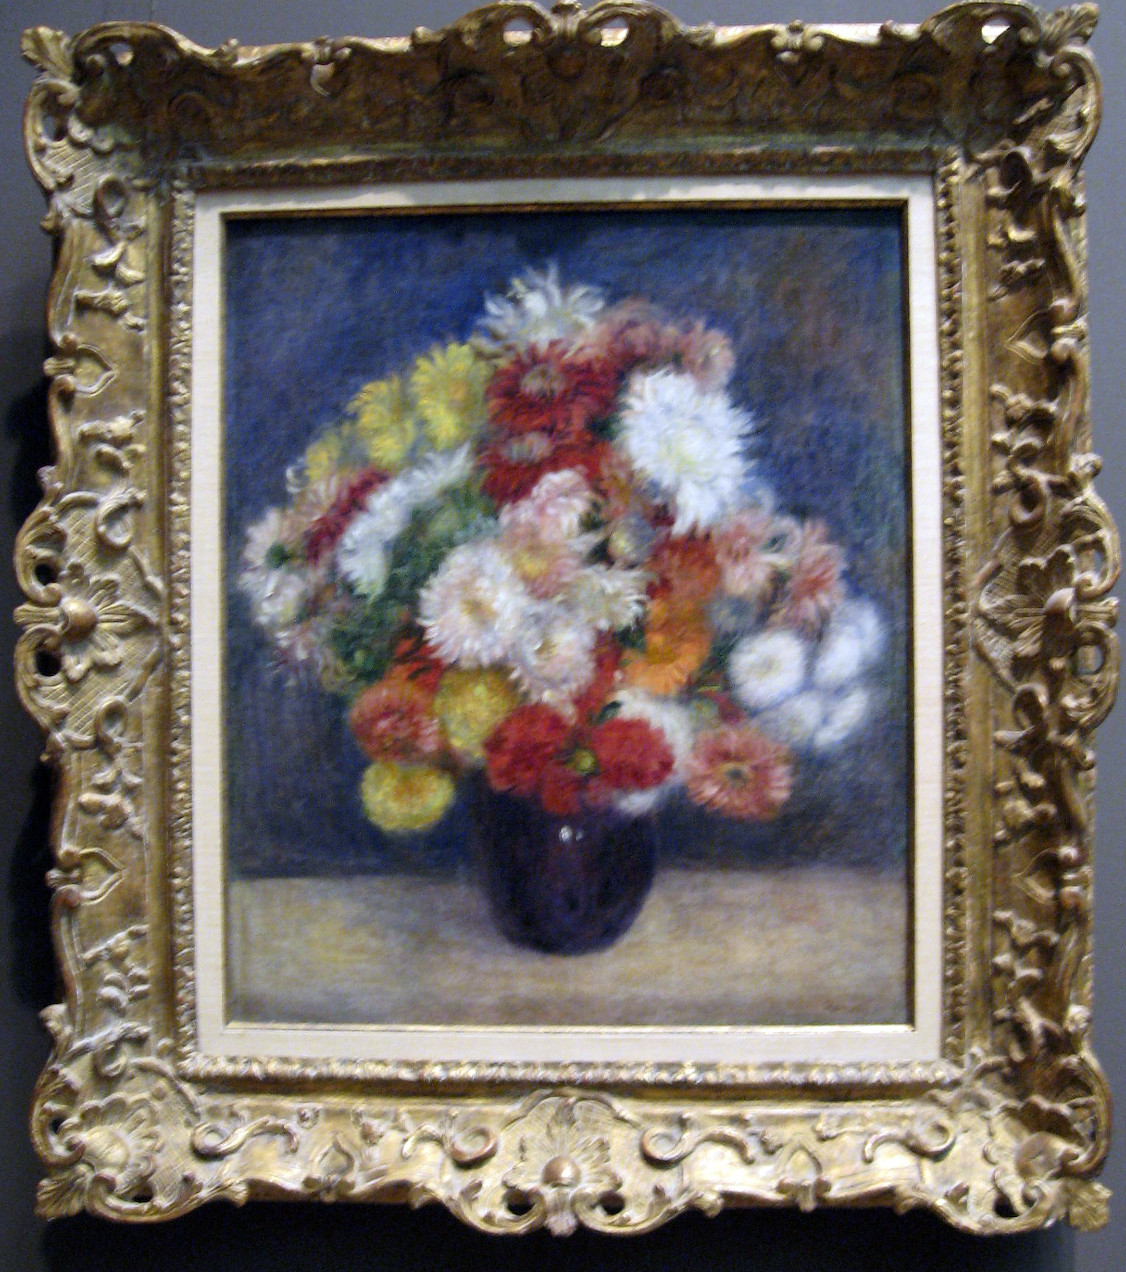 claude monet vase of flowers of the art of painting september 2010 with pierre auguste renoir